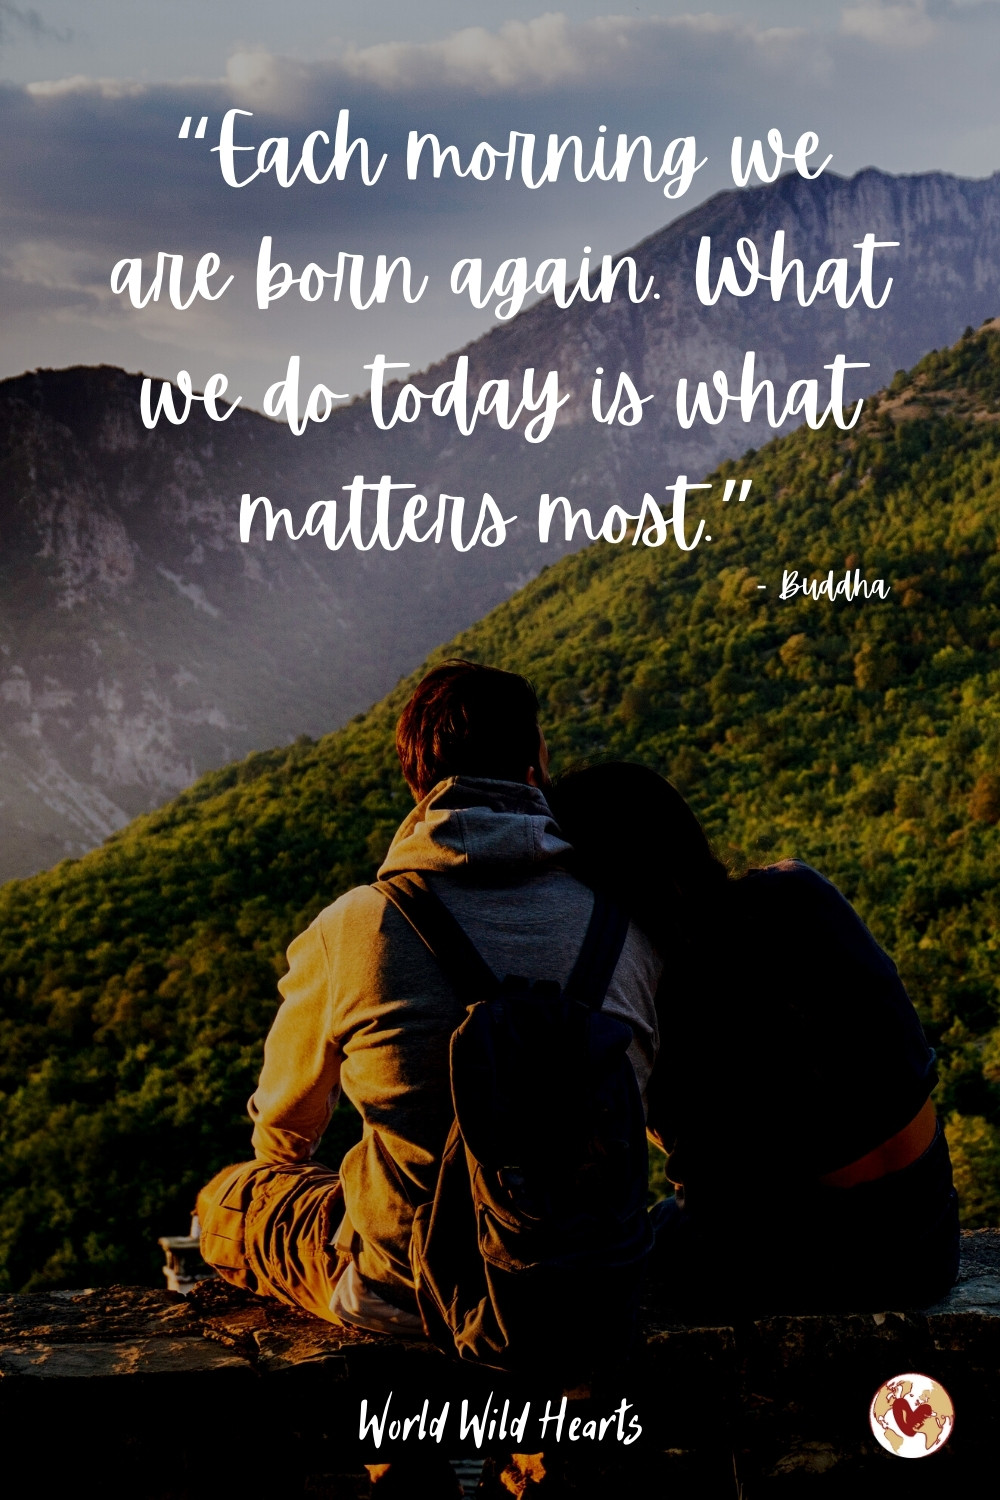 Adventure quote for couples